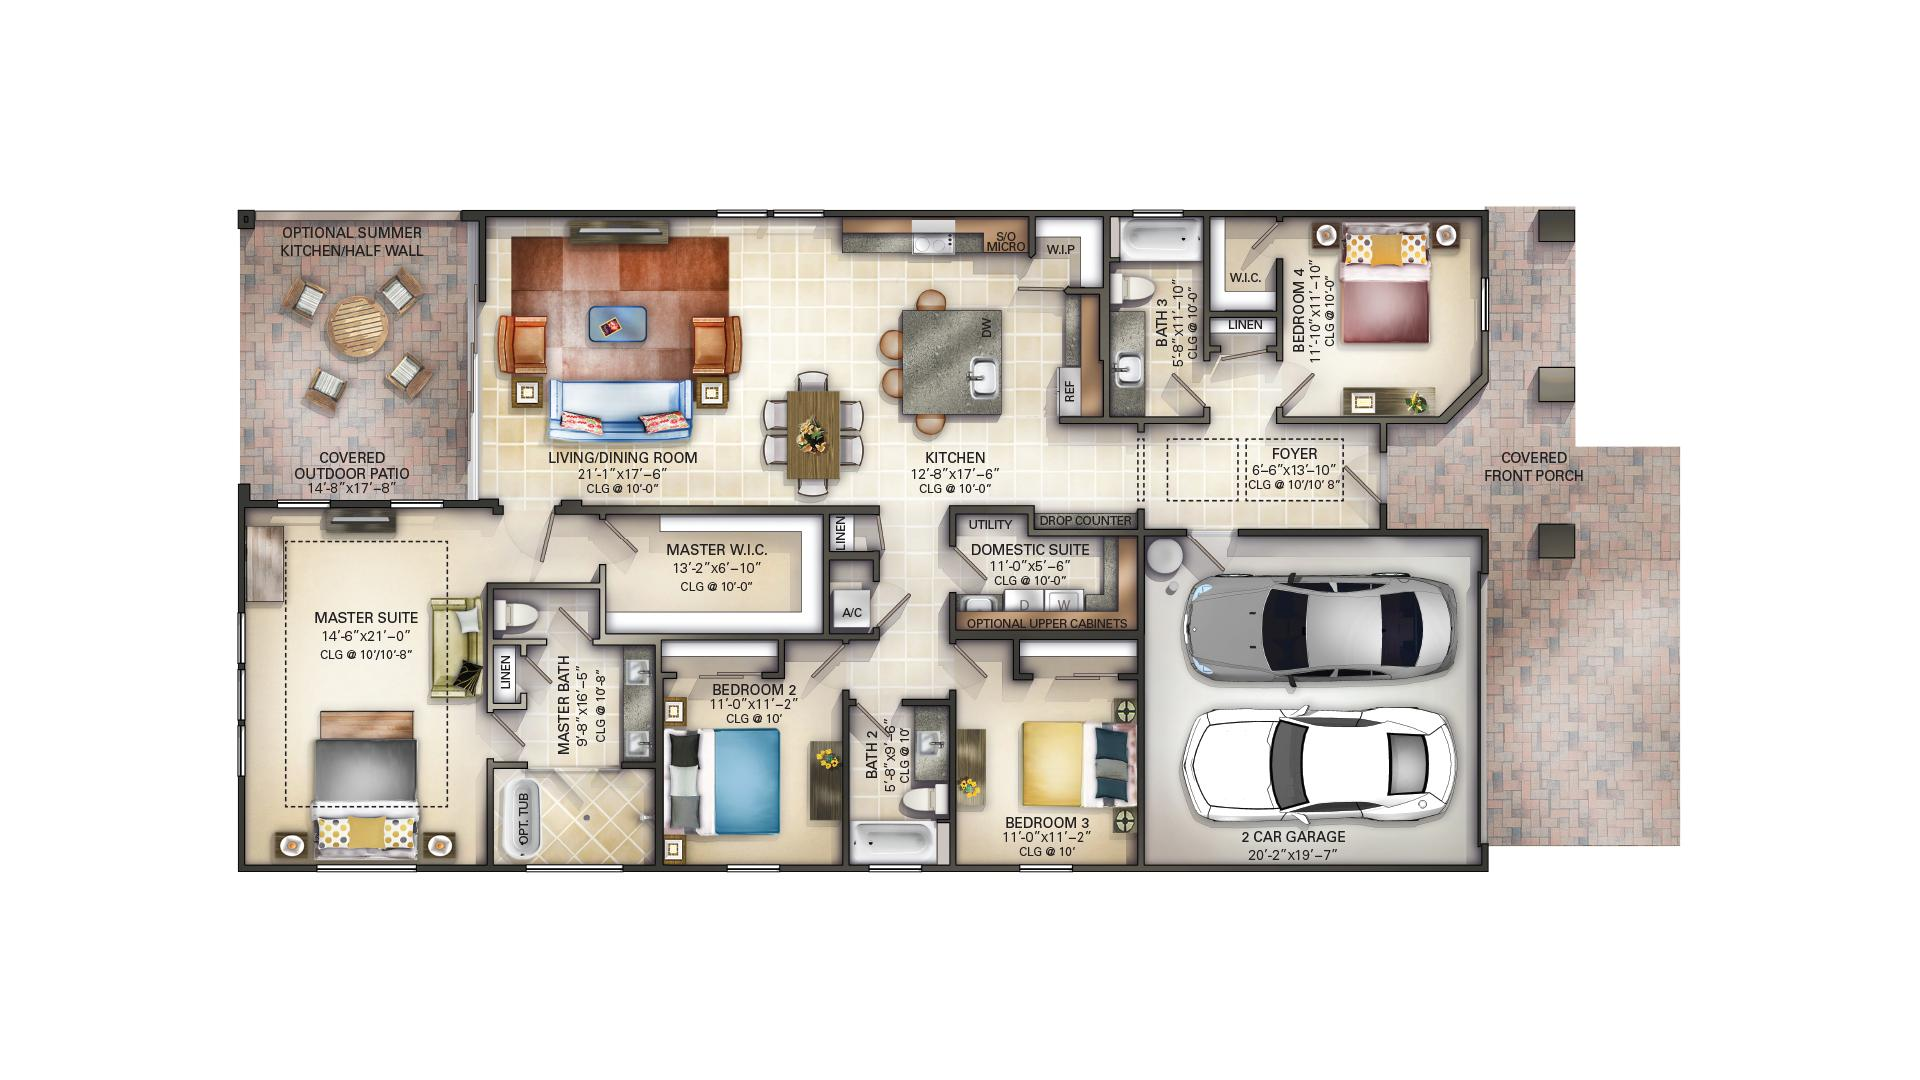 Muirfield-floorplan.jpg